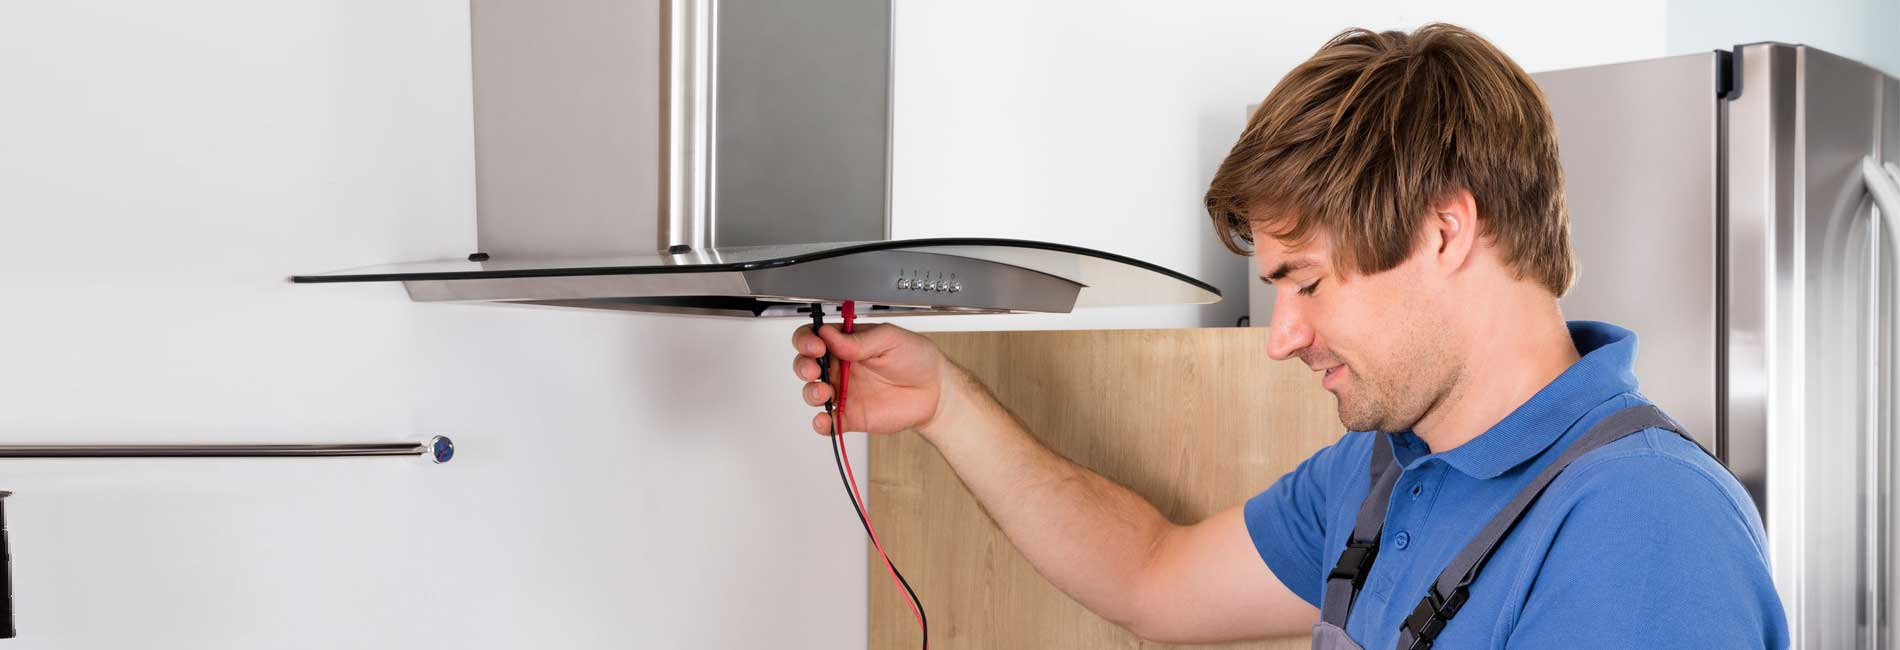 Whirlpool Chimney Service in MKB Nagar